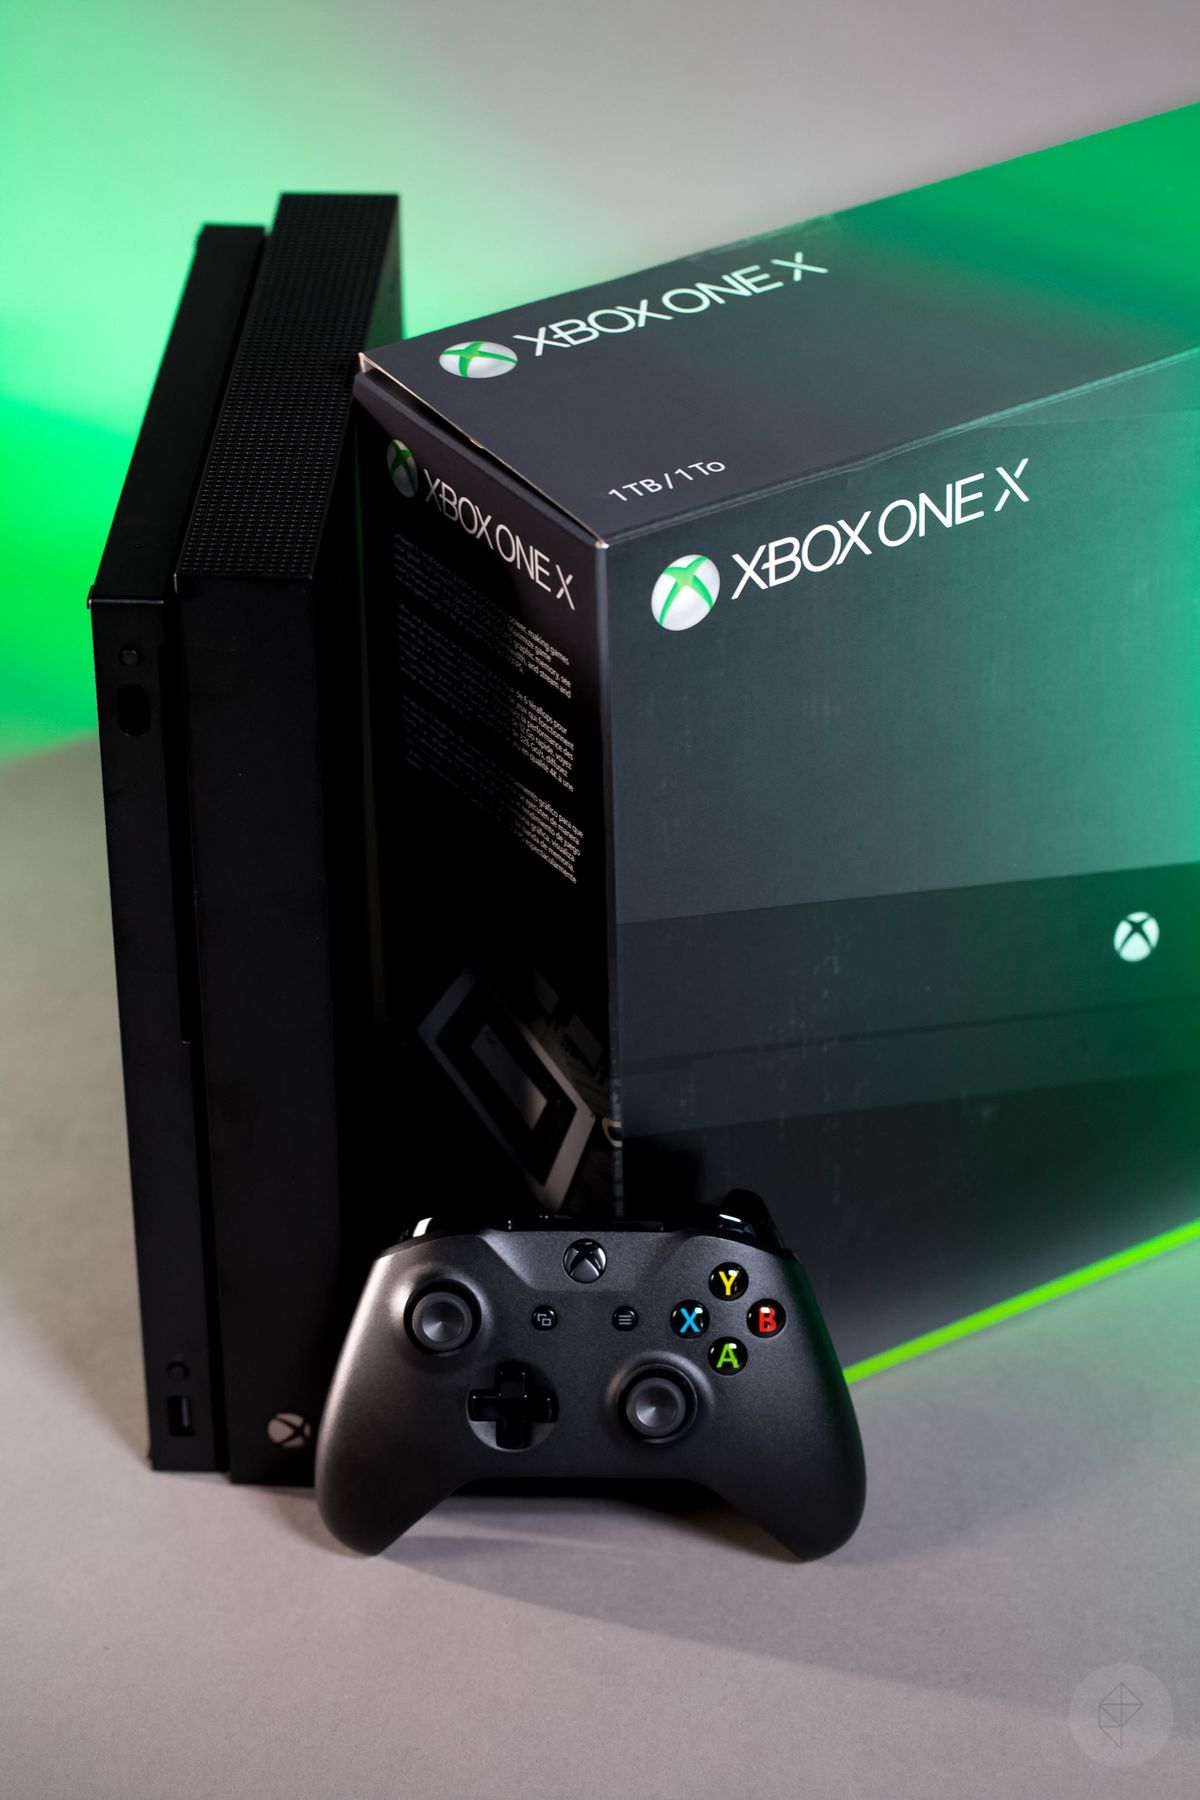 The Xbox One X looks unremarkable, except for its size ...